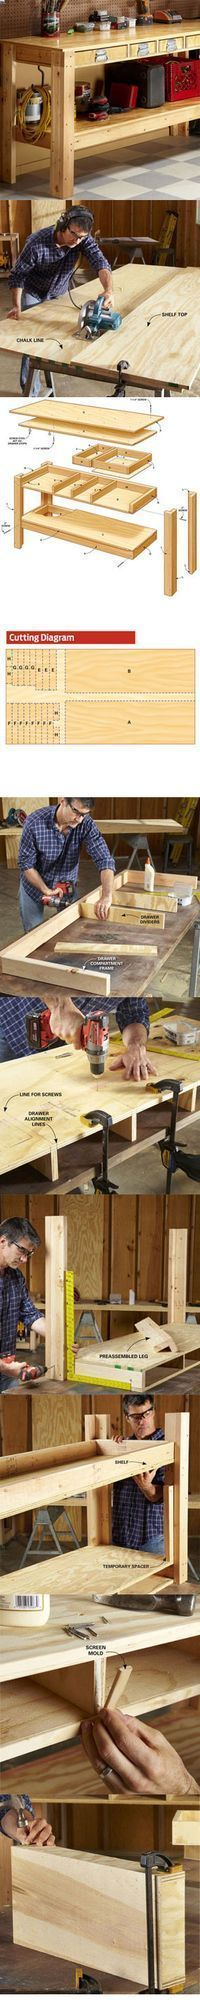 Use this simple workbench plan to build a sturdy, tough workbench that'll last for decades. It has drawers and shelves for tool storage. It's inexpensive. And even a novice can build it in one day. Get your simple workbench plans at http://www.familyhandyman.com/DIY-Projects/Woodworking/Workbenches/simple-workbench-plans #woodworkingbench